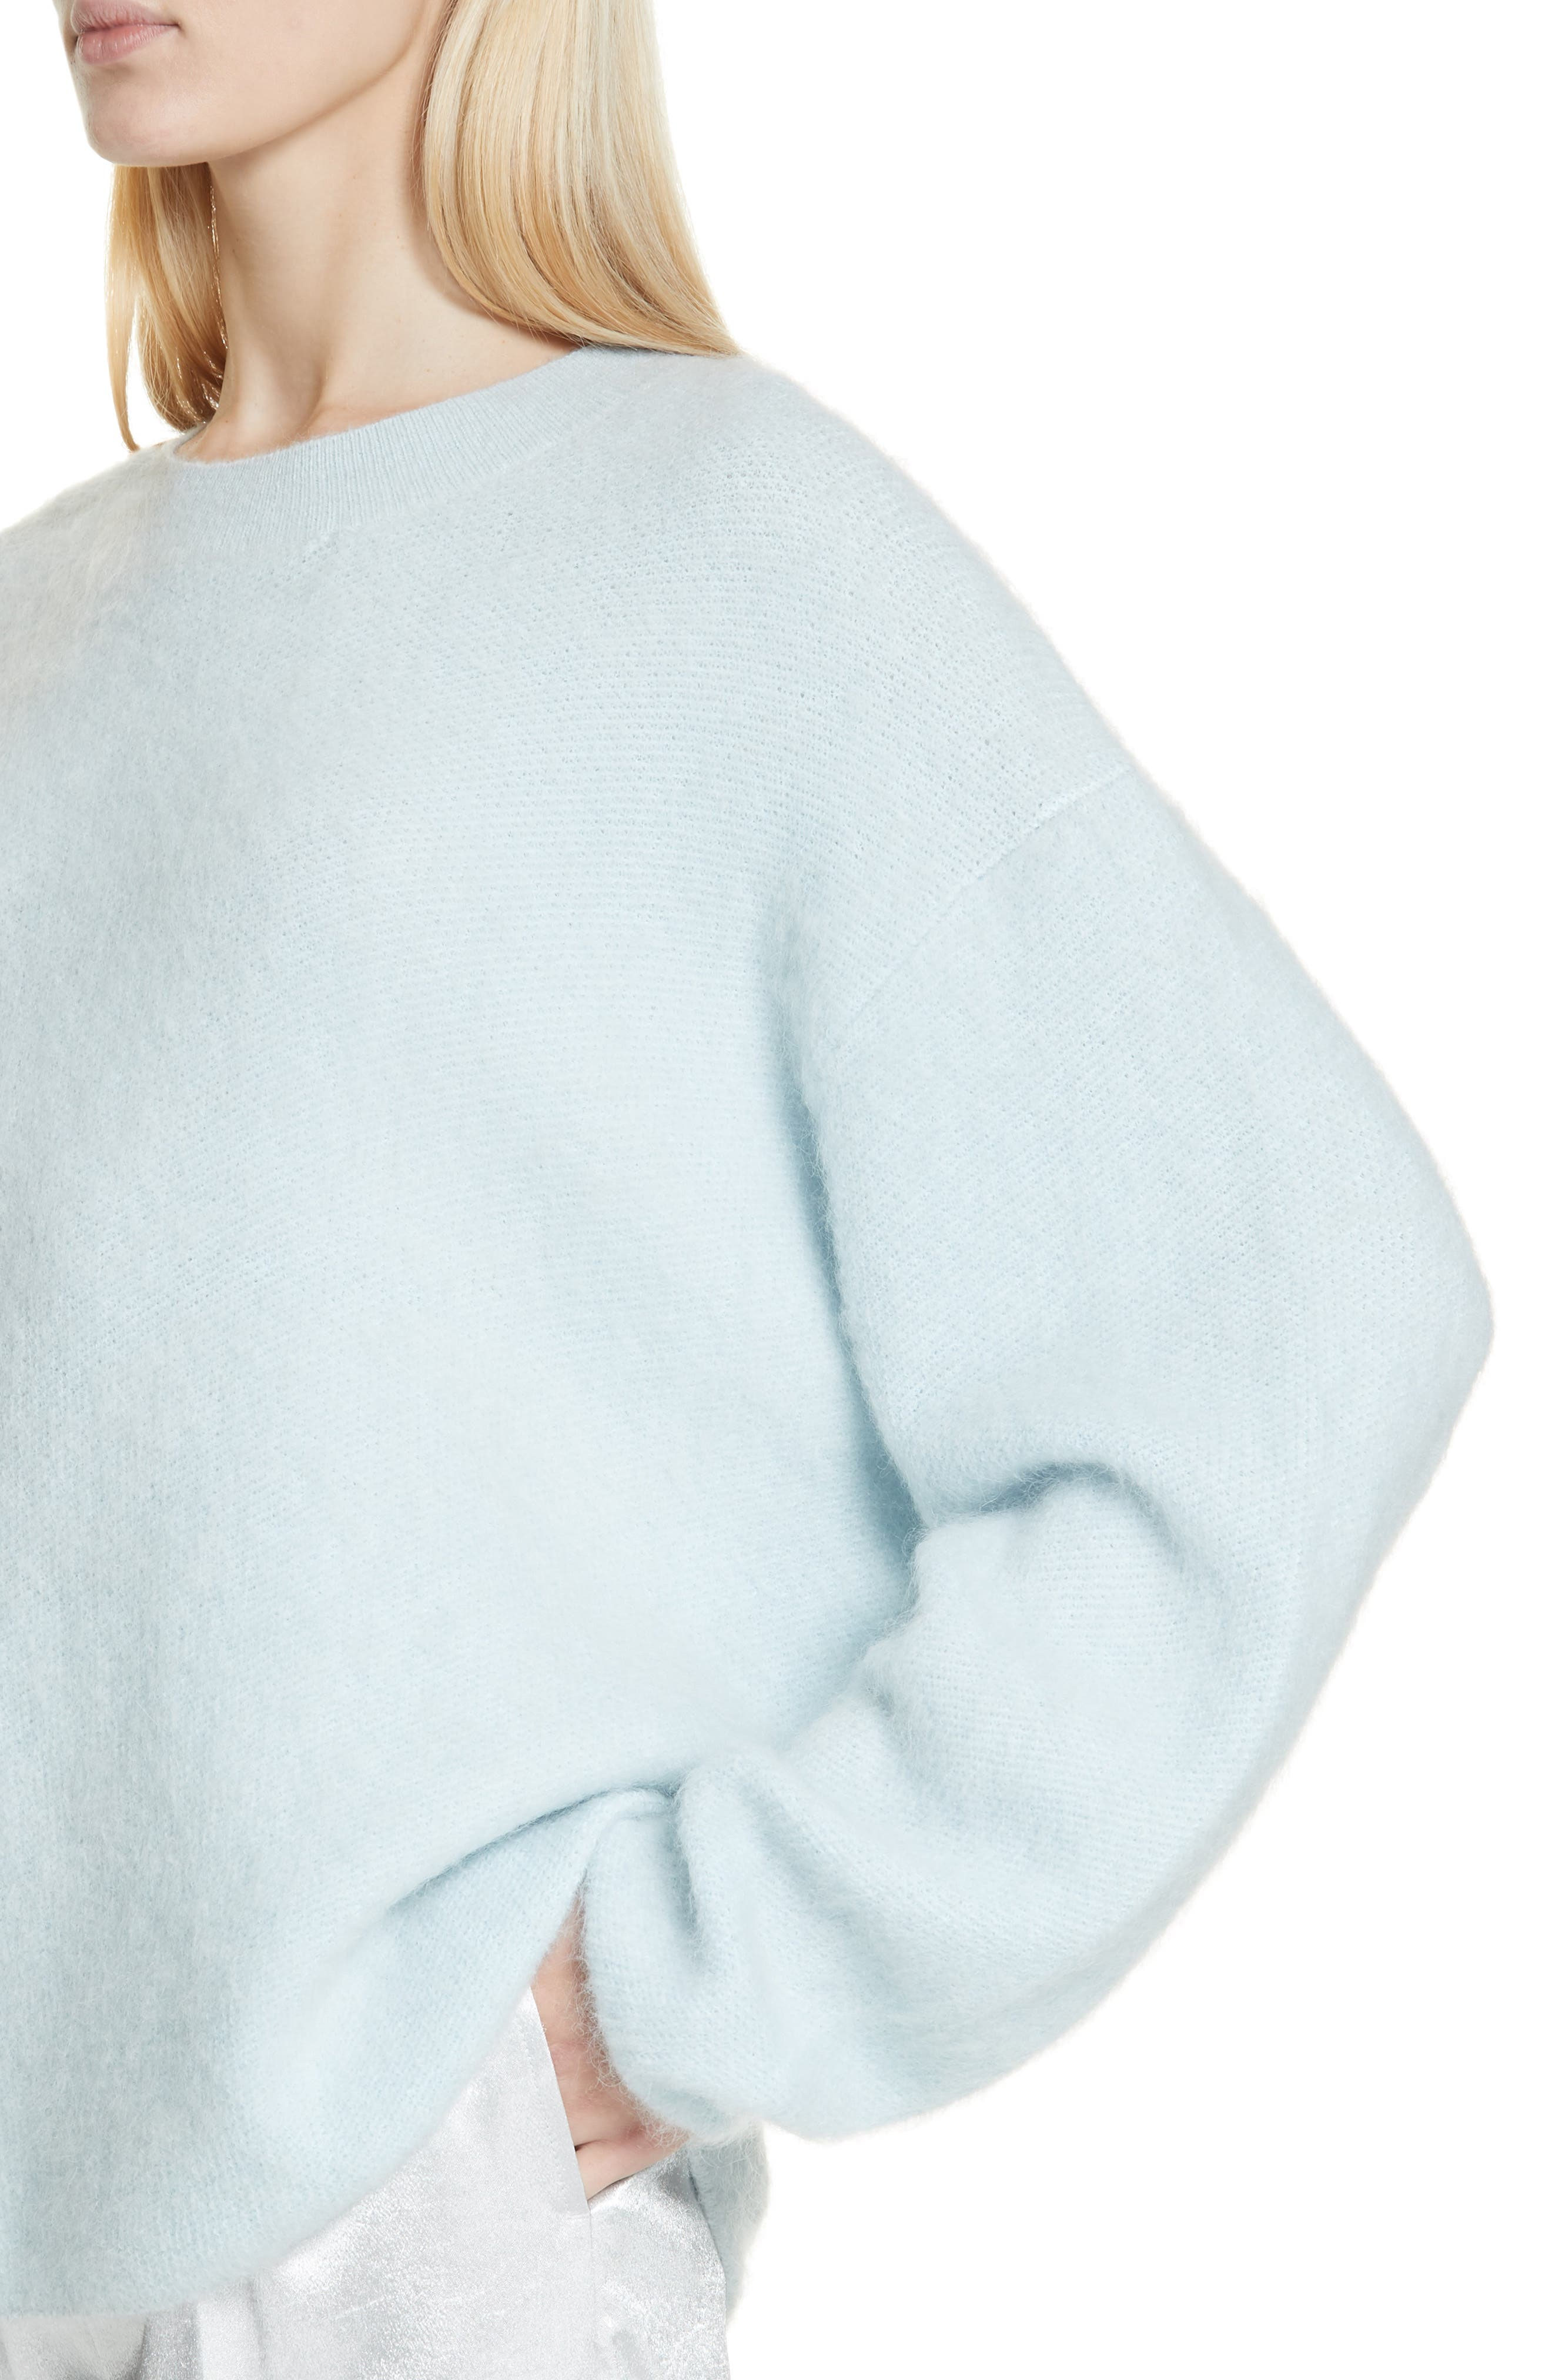 VINCE, Oversize Sweater, Alternate thumbnail 4, color, ICE/ BLUE